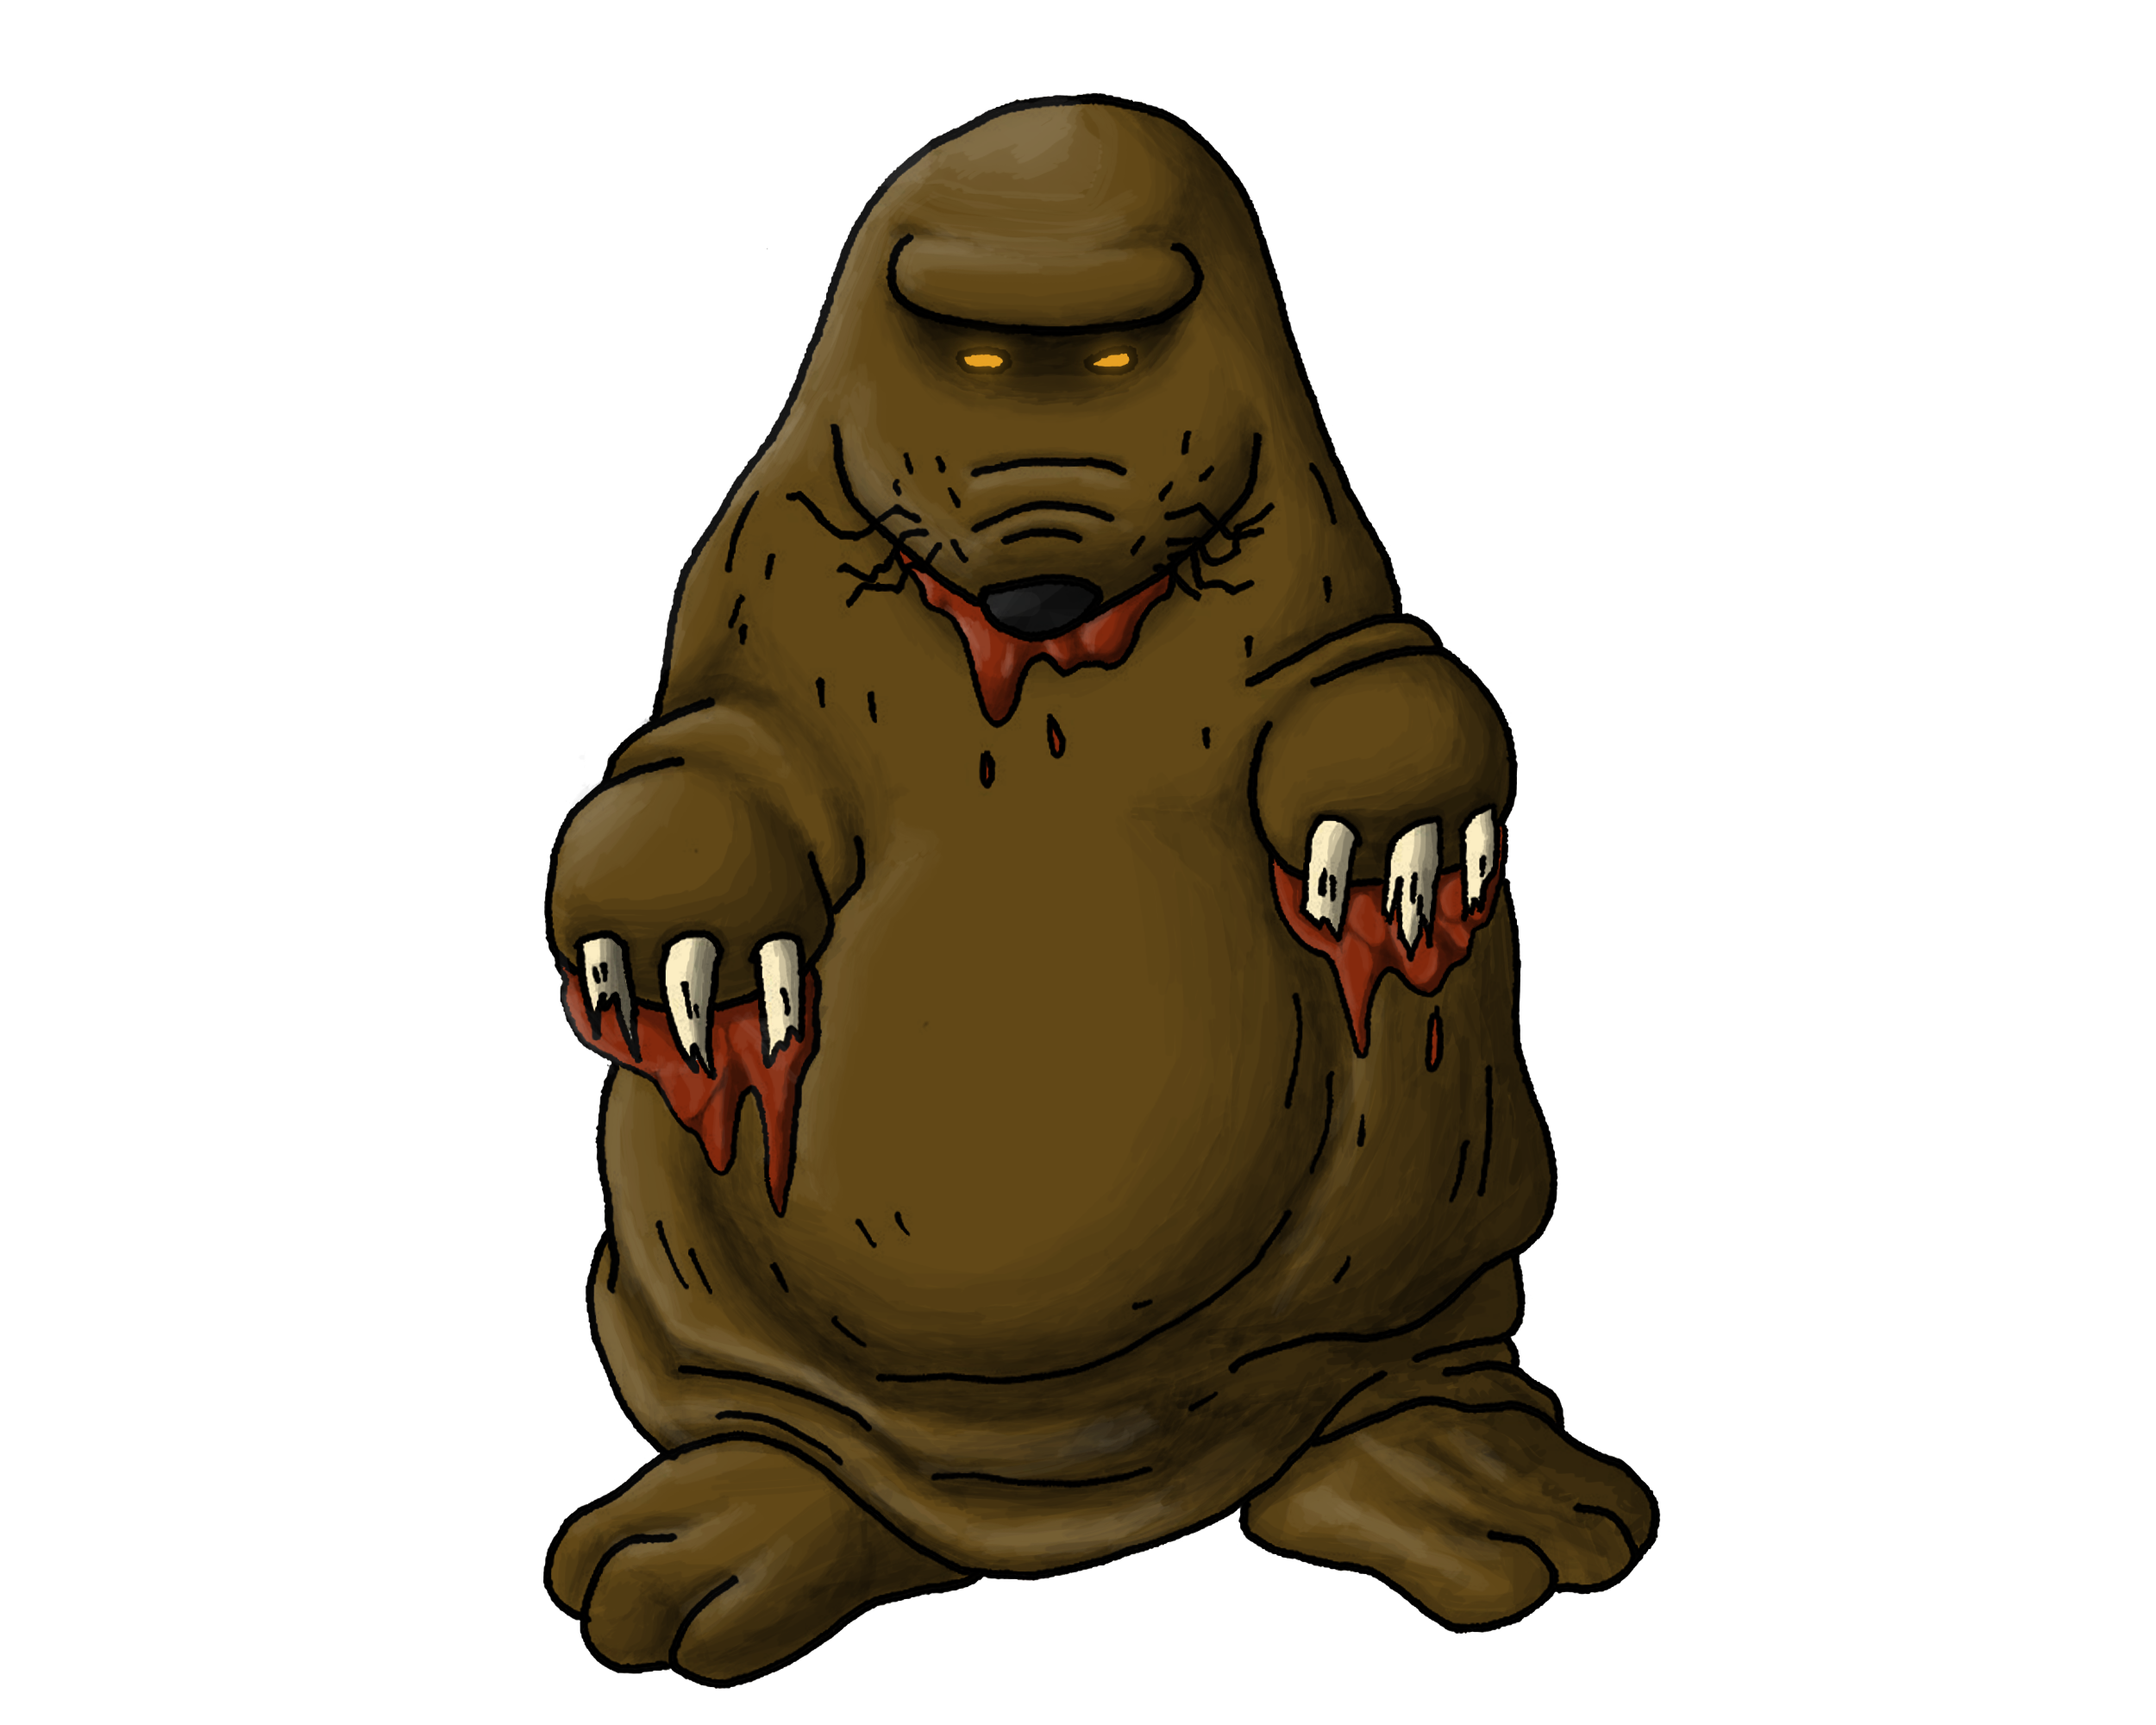 Mole clipart earthbound. Mother art october collection